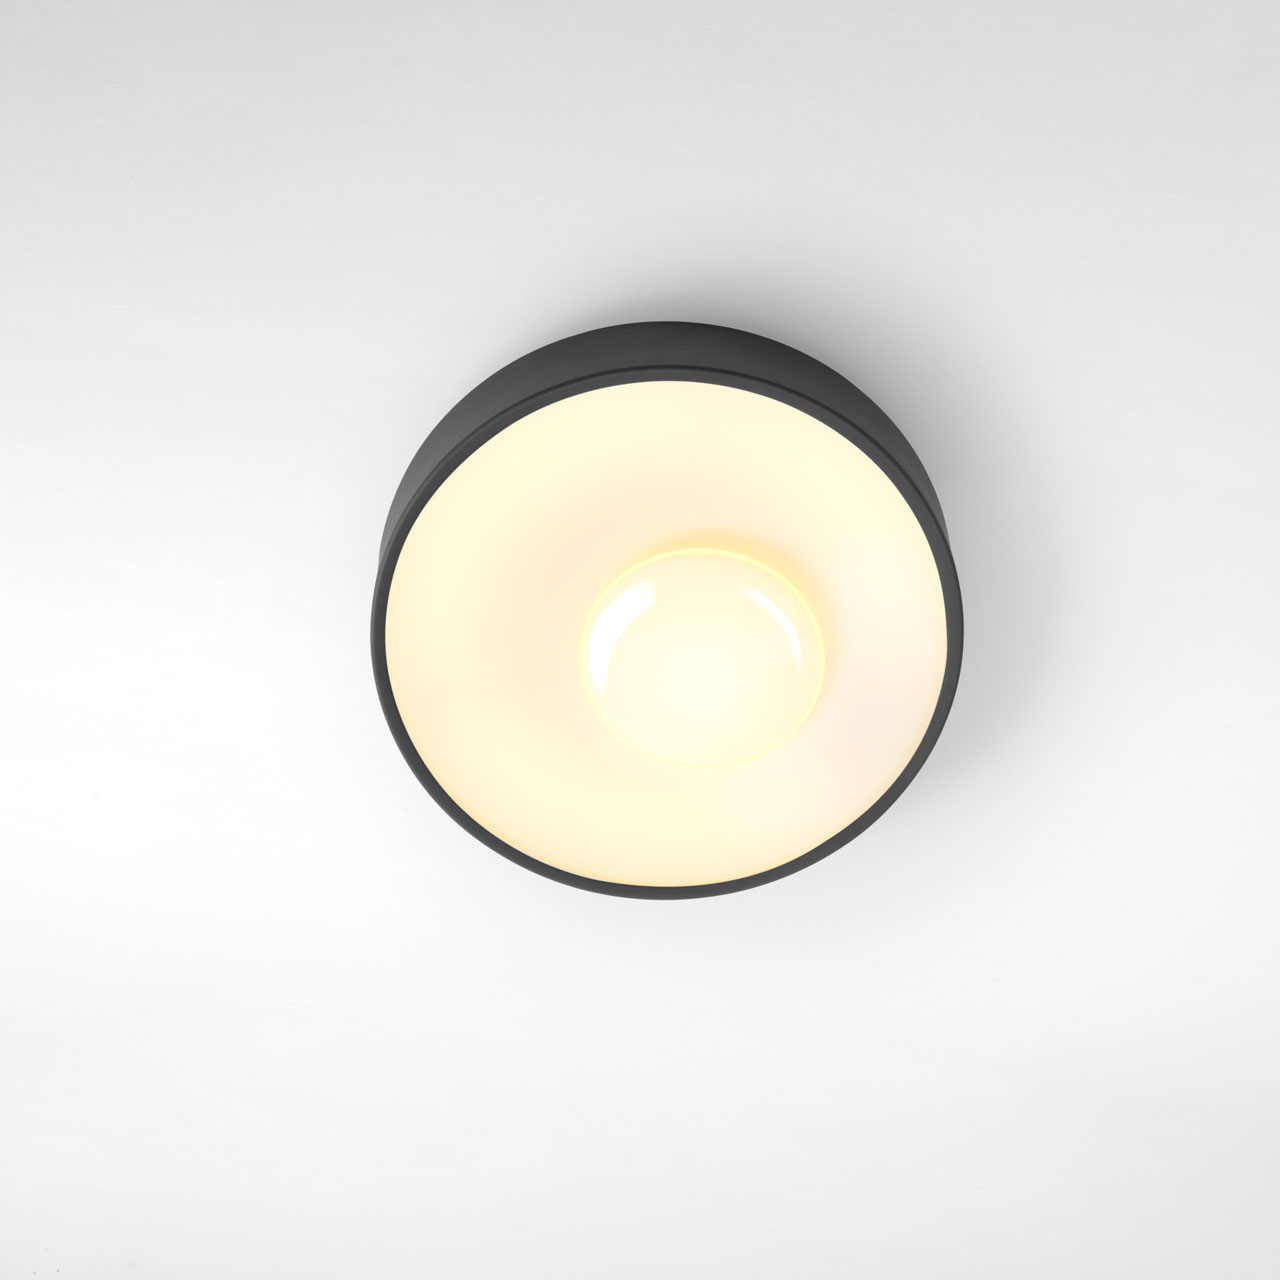 Sun Plafón 40 LED 25.9W Grafito (Dimmable)